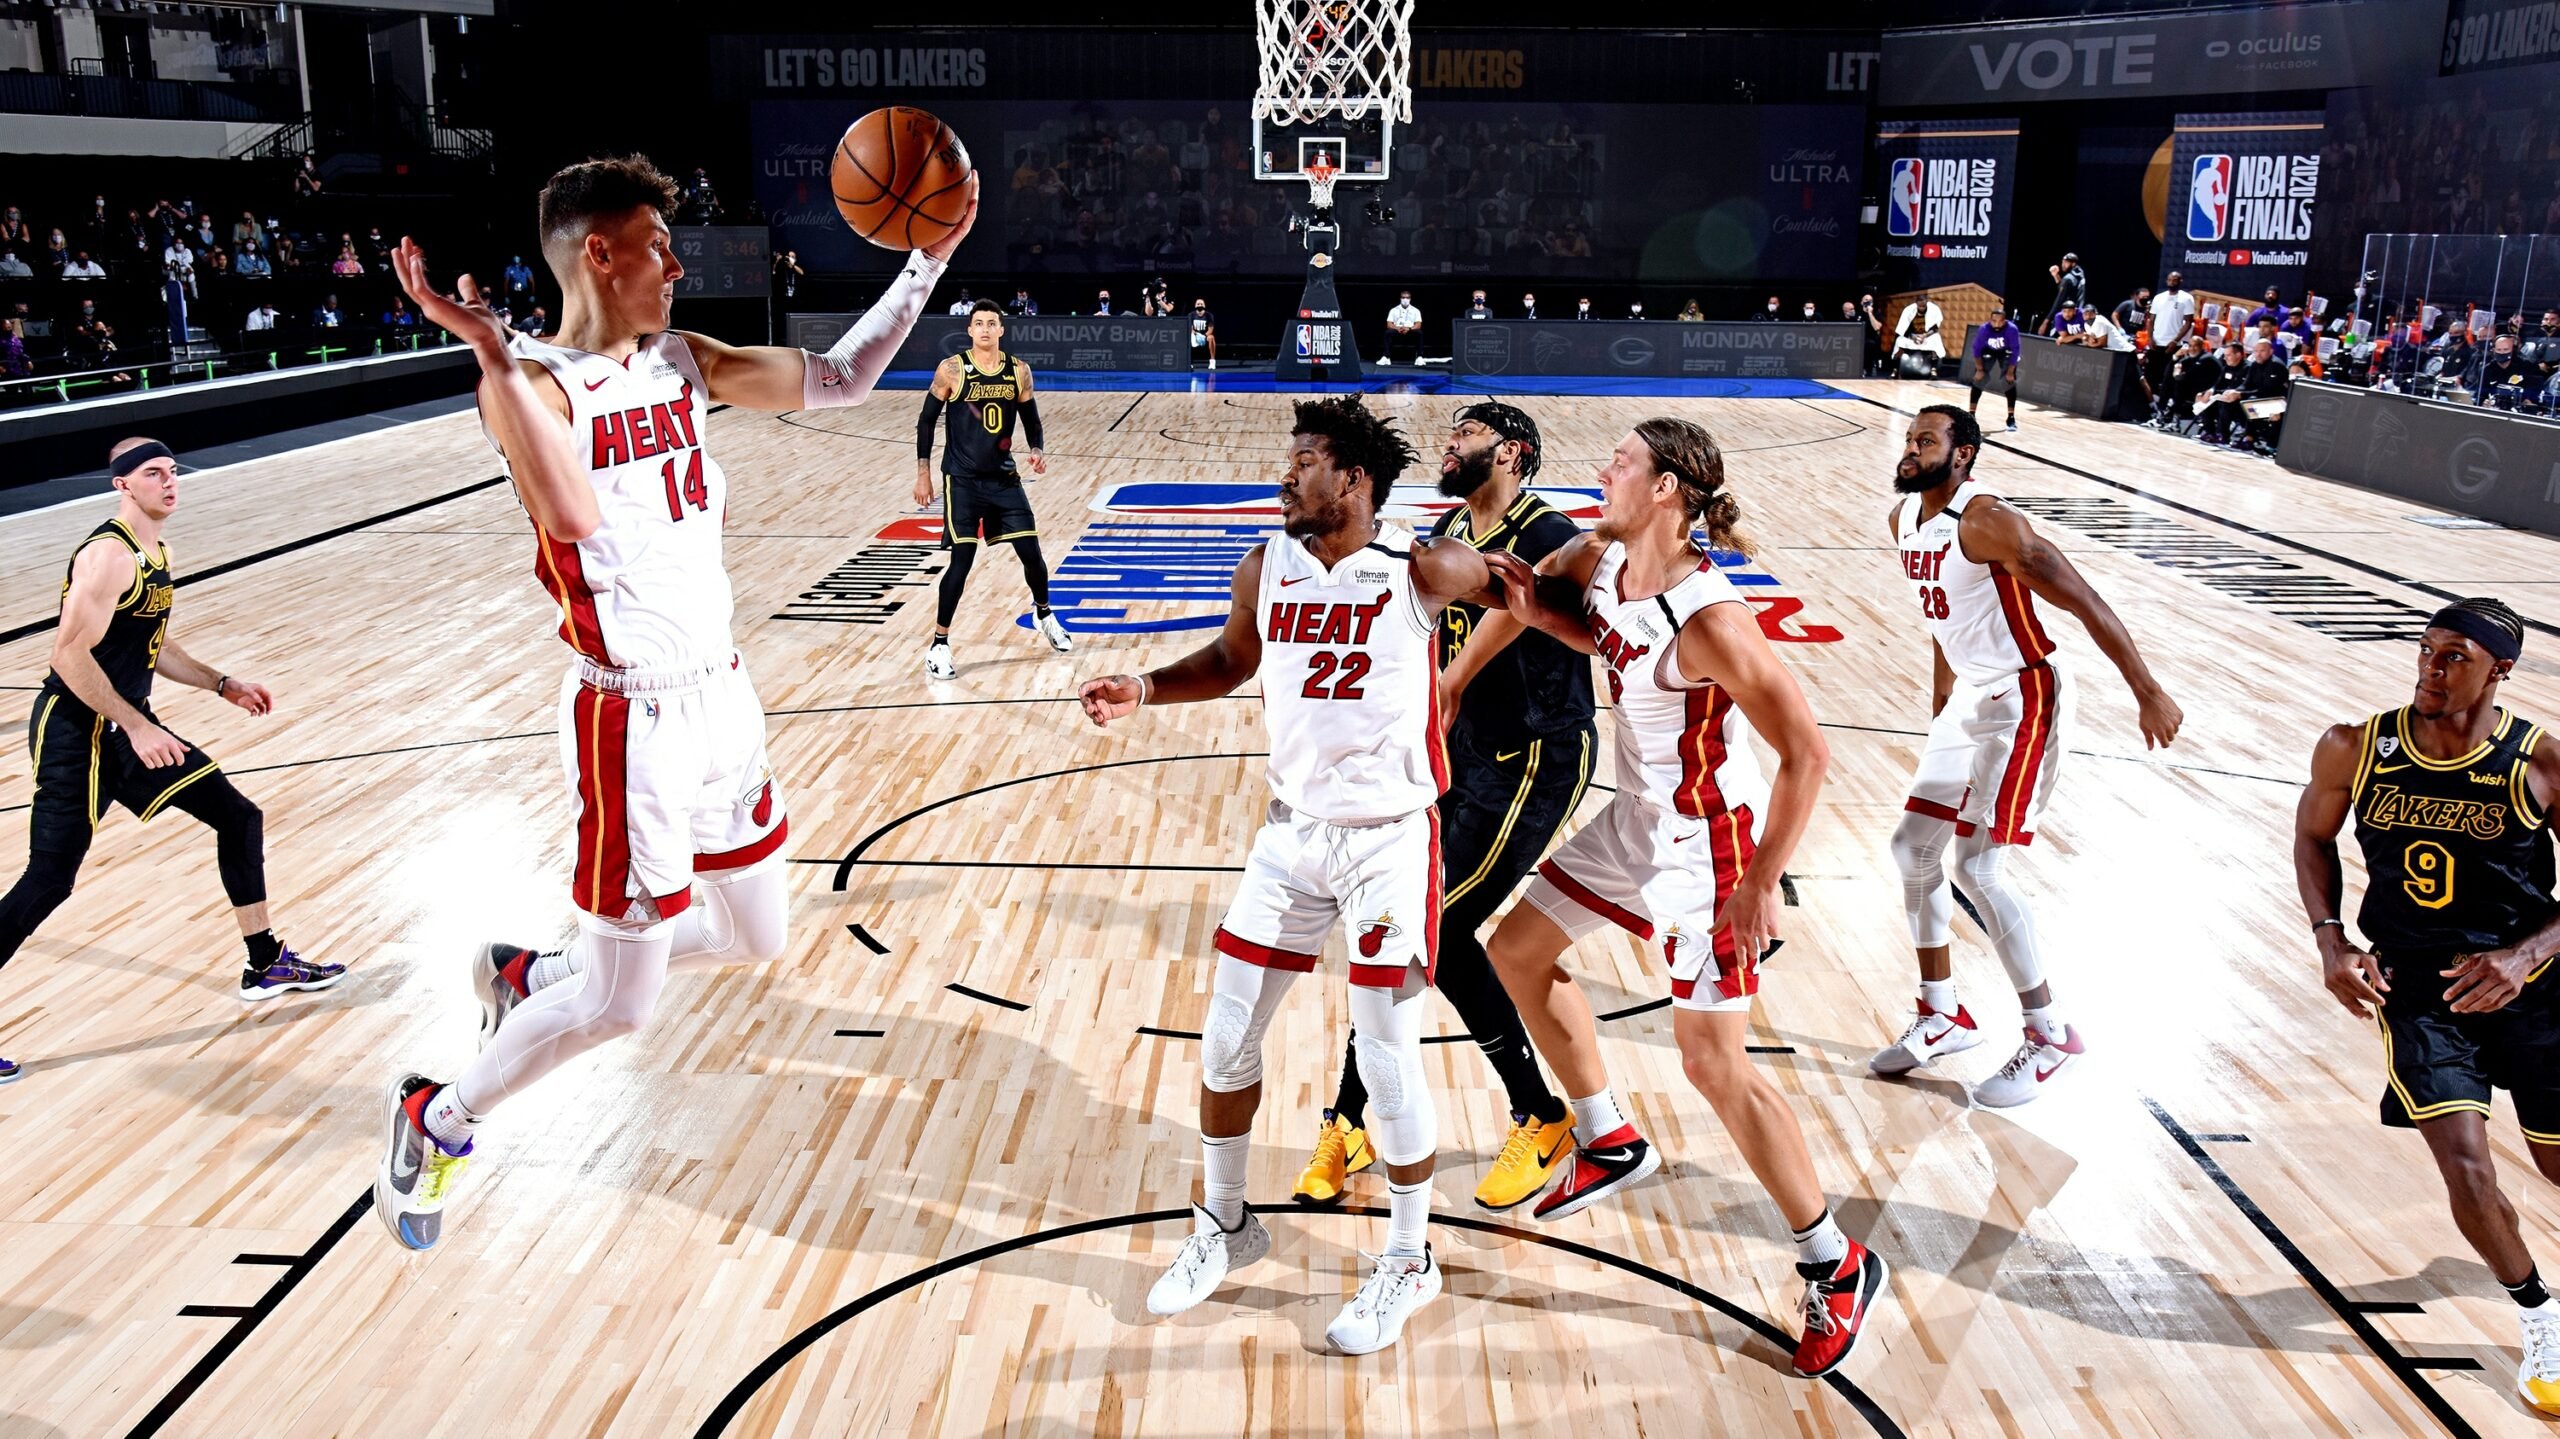 Facing daunting challenge against Lakers, Heat vow to find a way